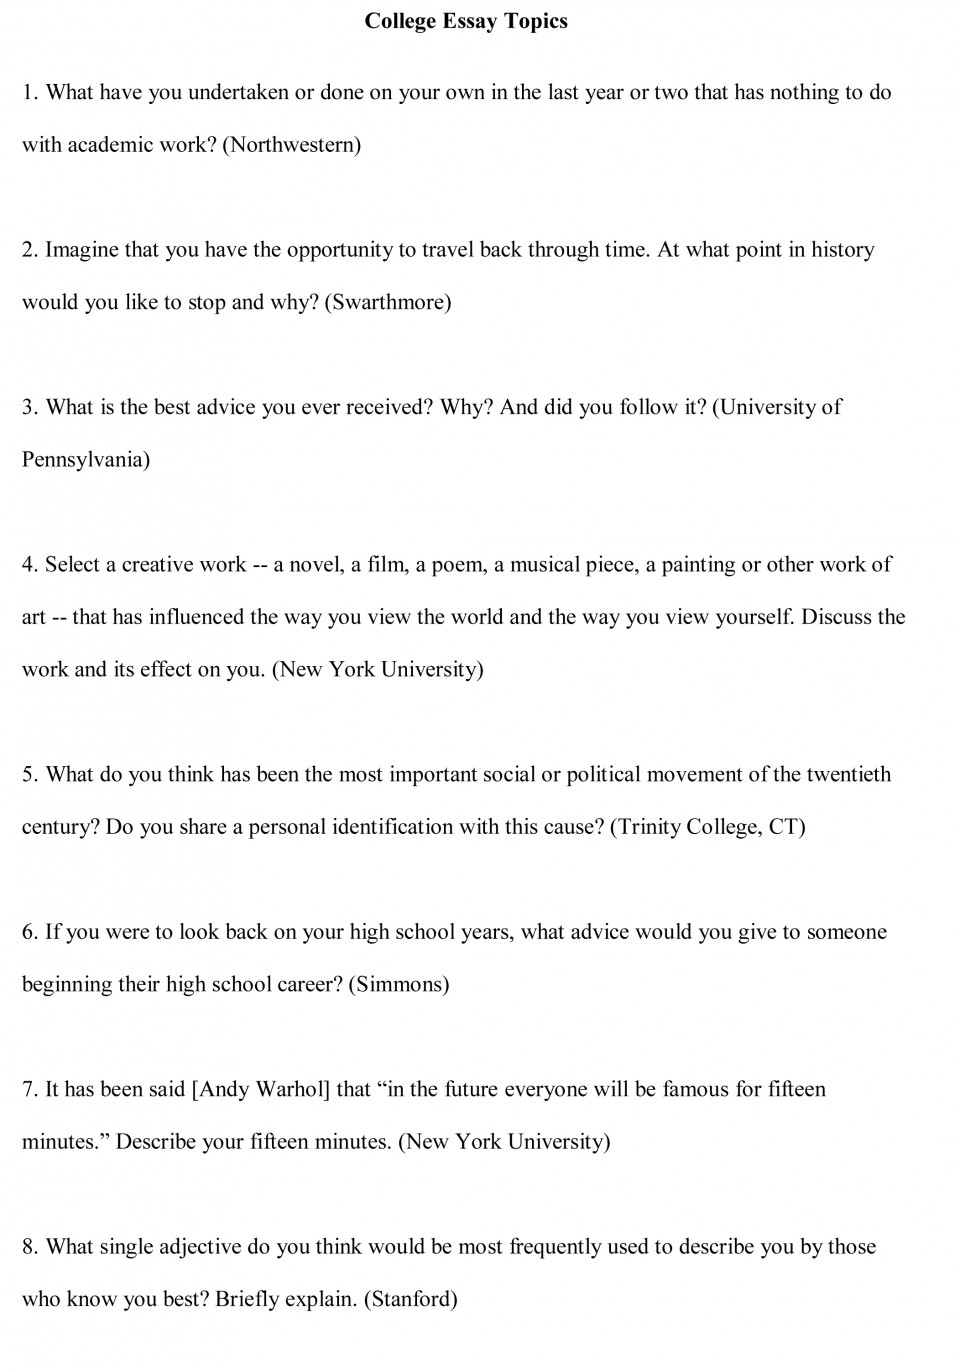 023 Free Essay Generator College Topics Sample1 Impressive Reddit No Sign Up 960